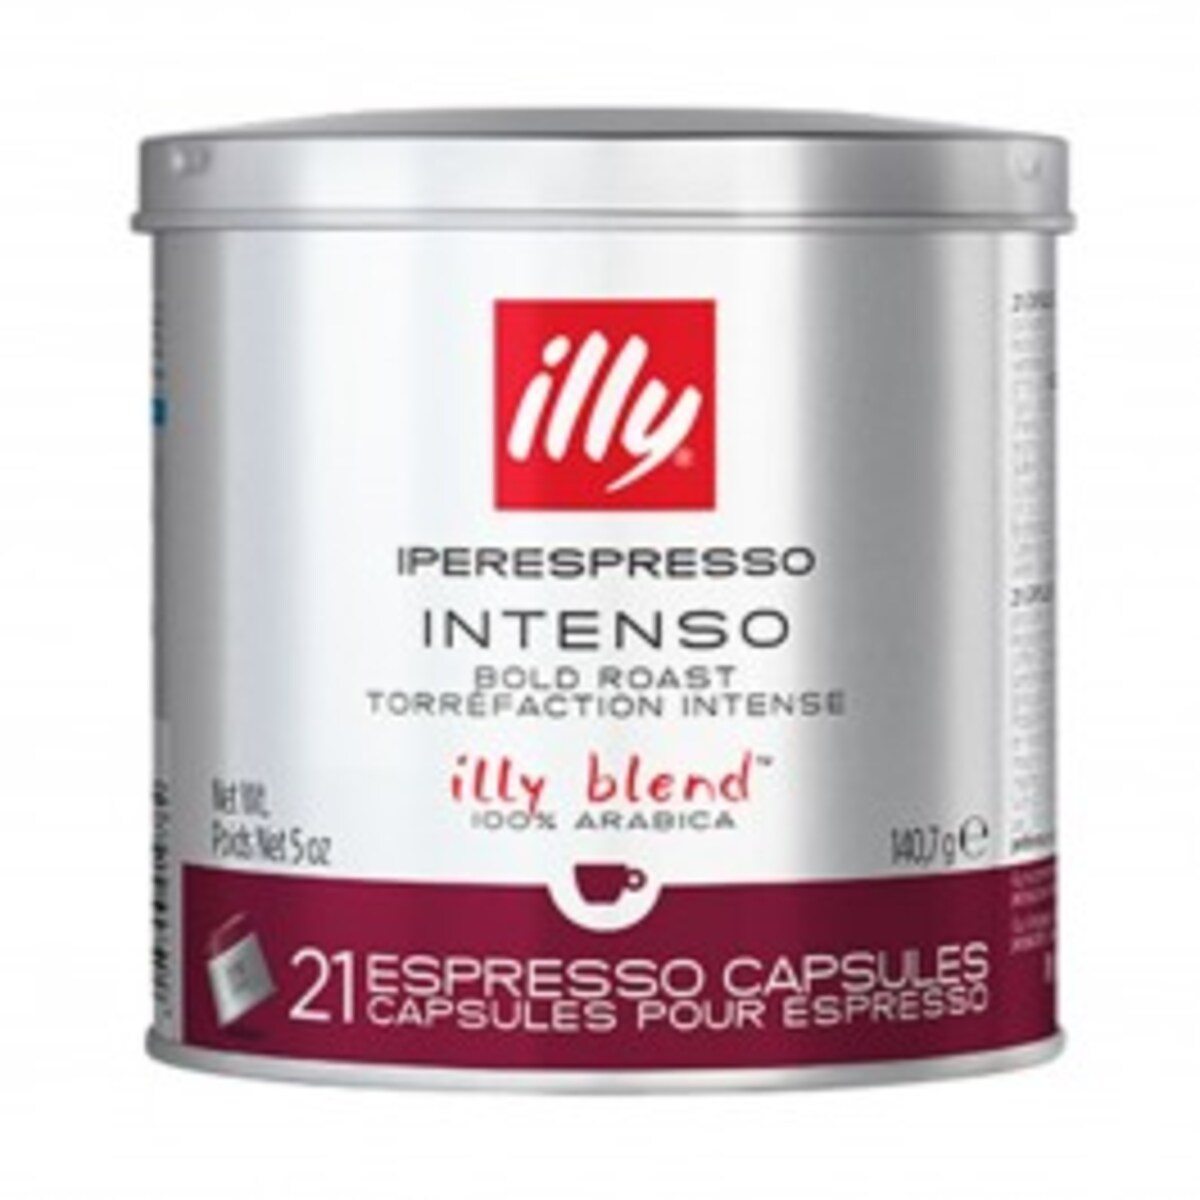 illy Iper Home Intenso- 21 бр. капсули за Iperespresso illy кафе машина